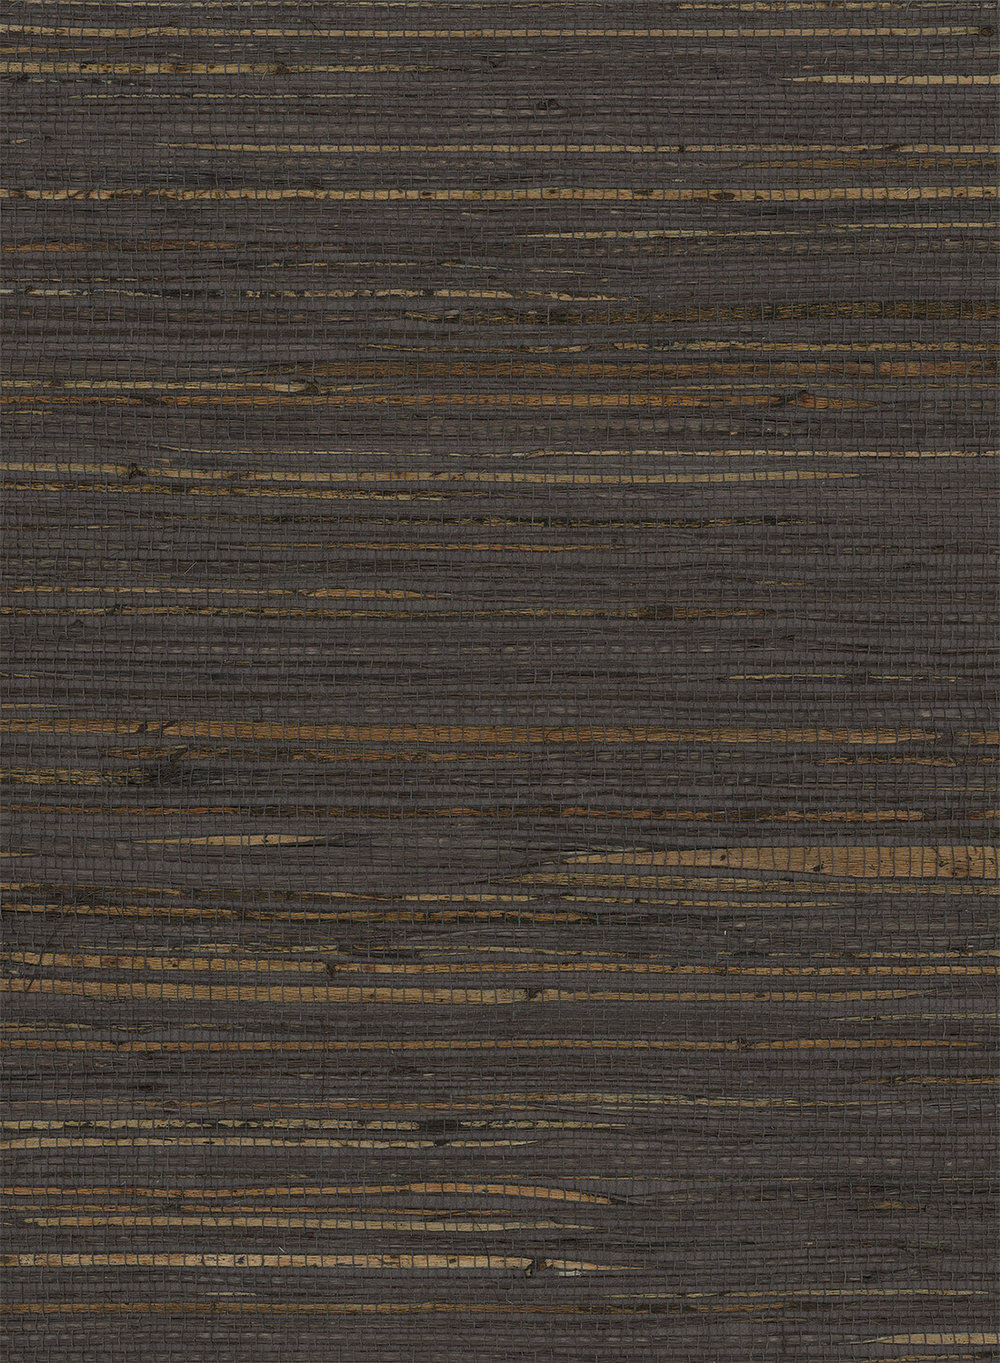 Jute Grasscloth - Grackle